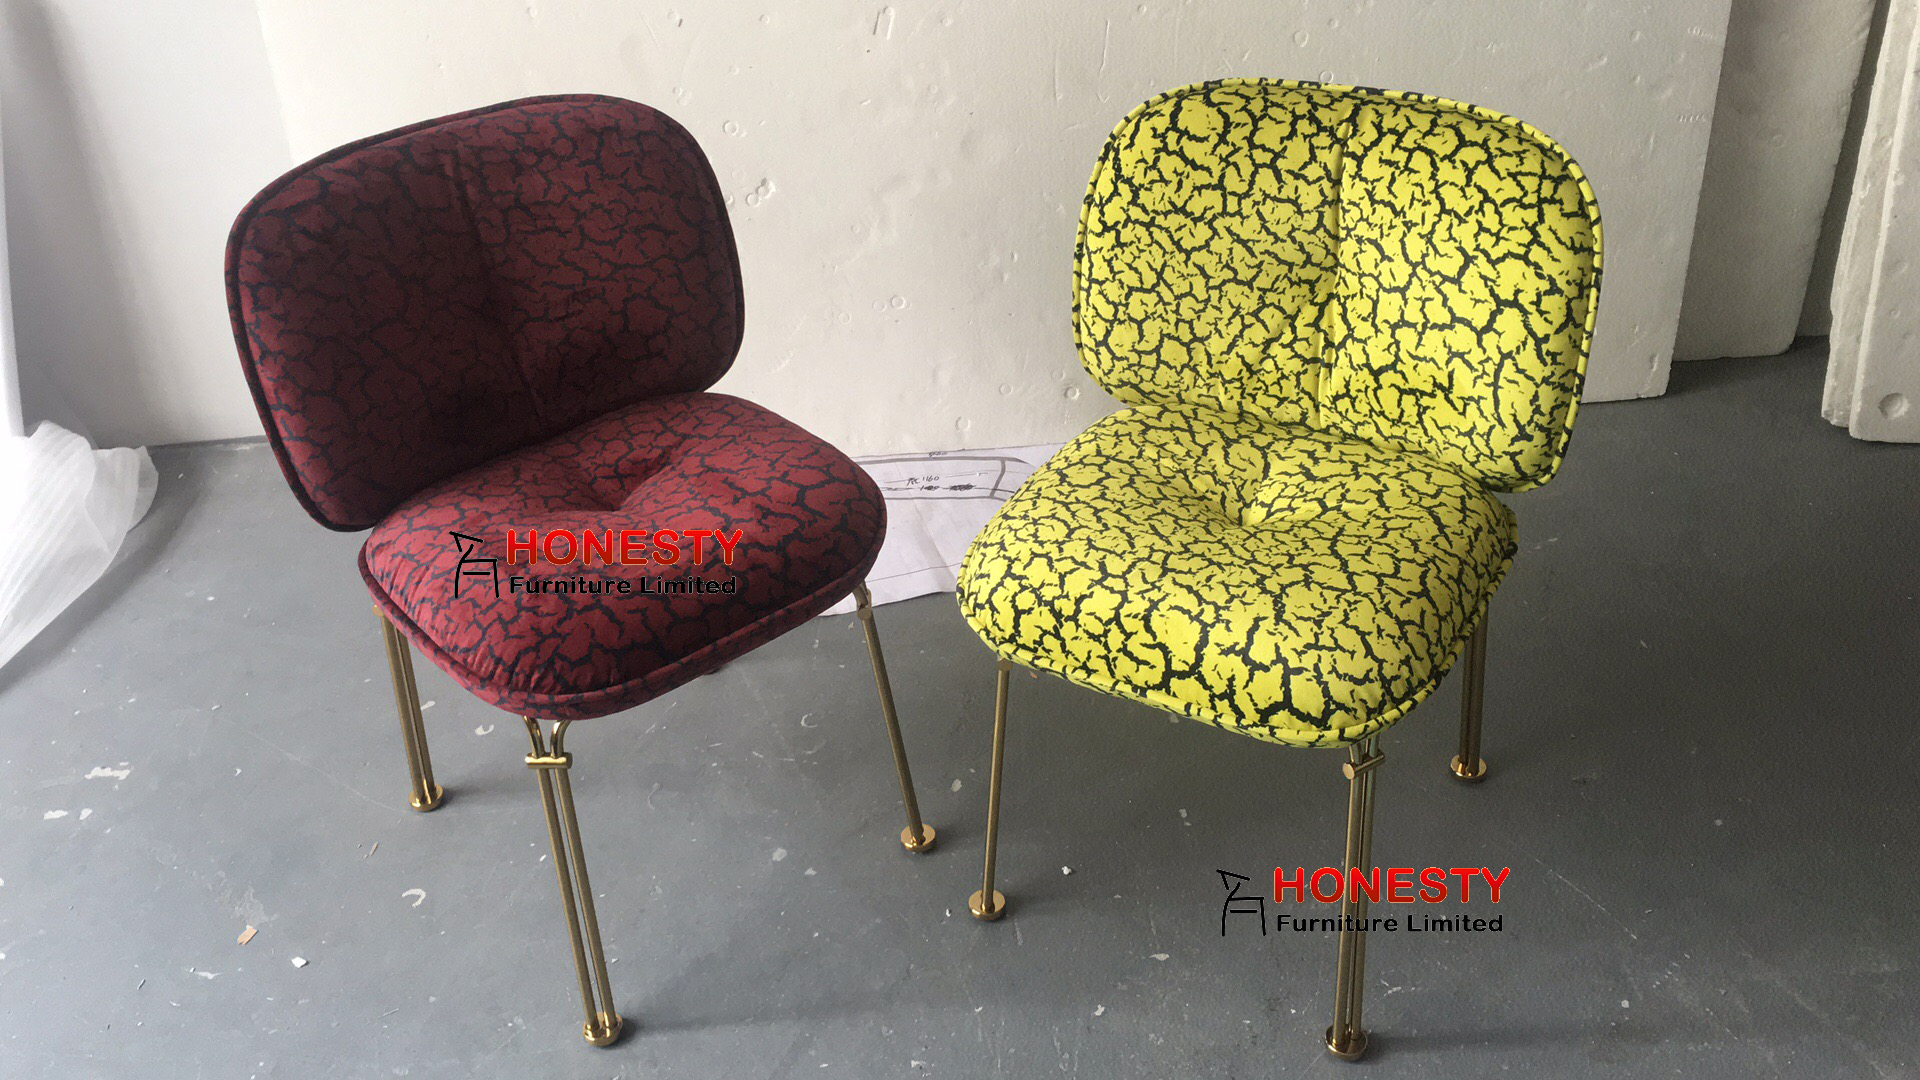 HC216 New Design Luxury Modern Metal Brass Gold Stainless Steel Upholstered Fabric Velvet Restaurant Dining Room Maddo Chair